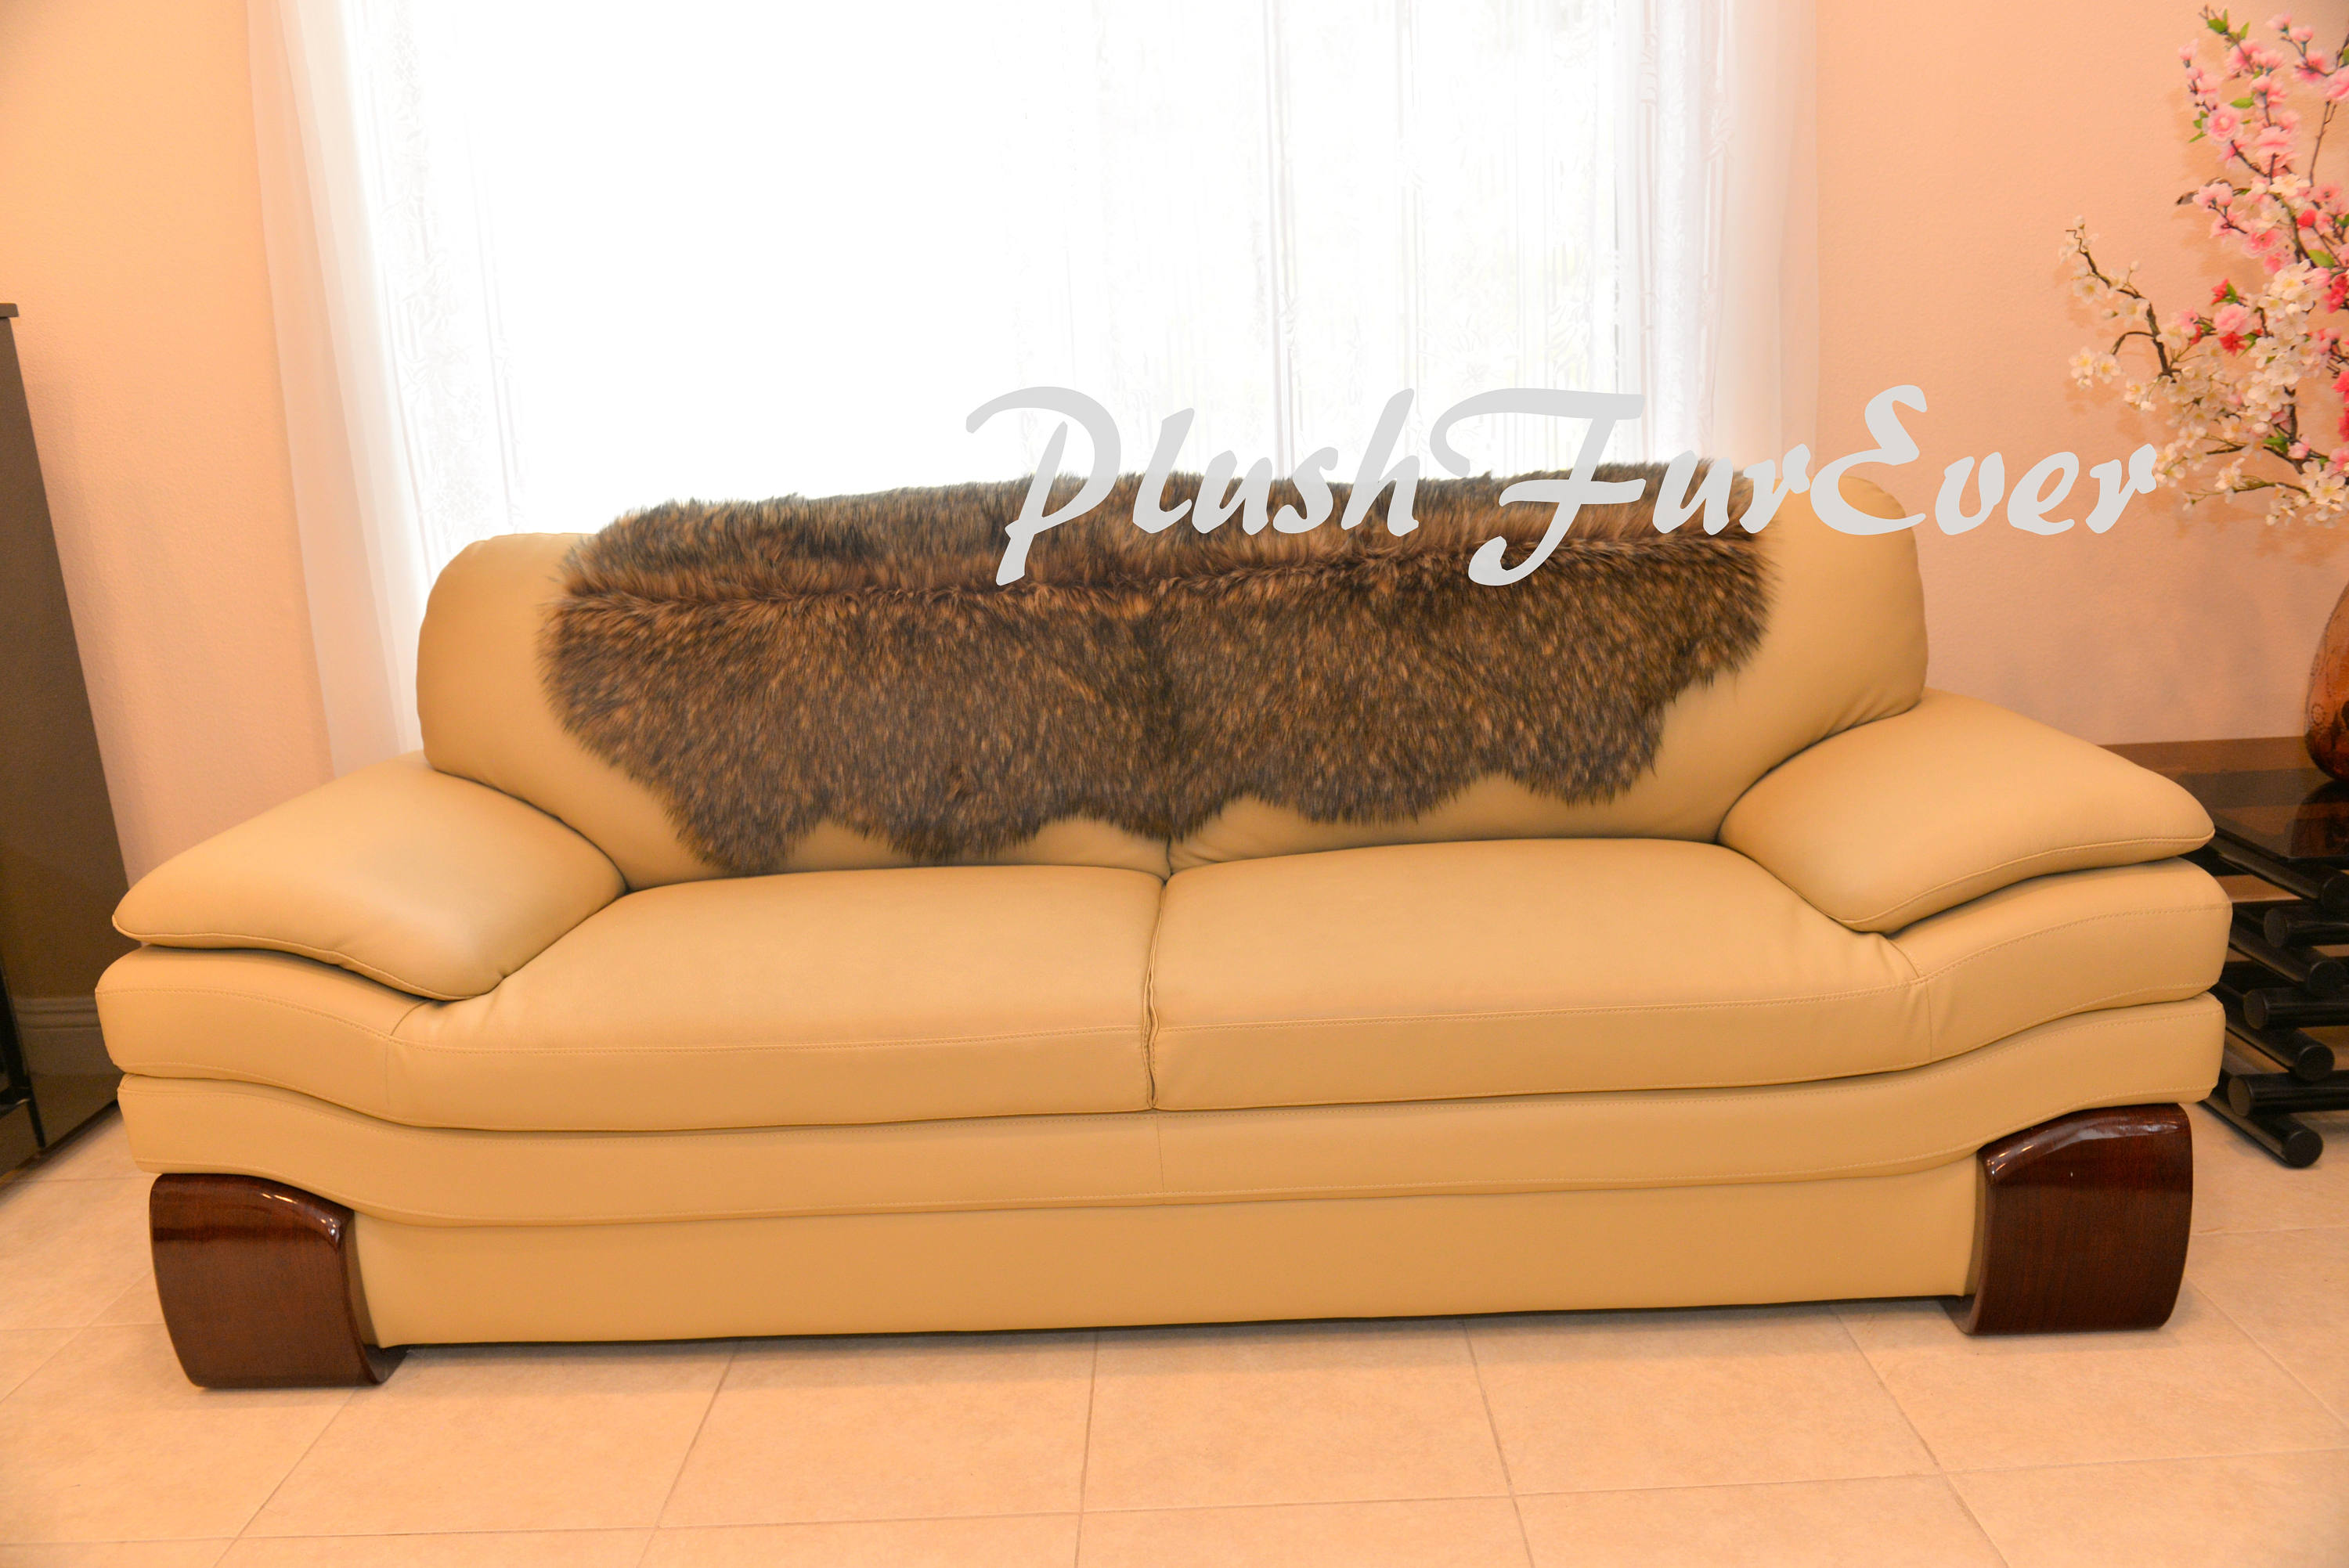 Exotic Couch Back Covers Decors Faux Fur Overlay Covers